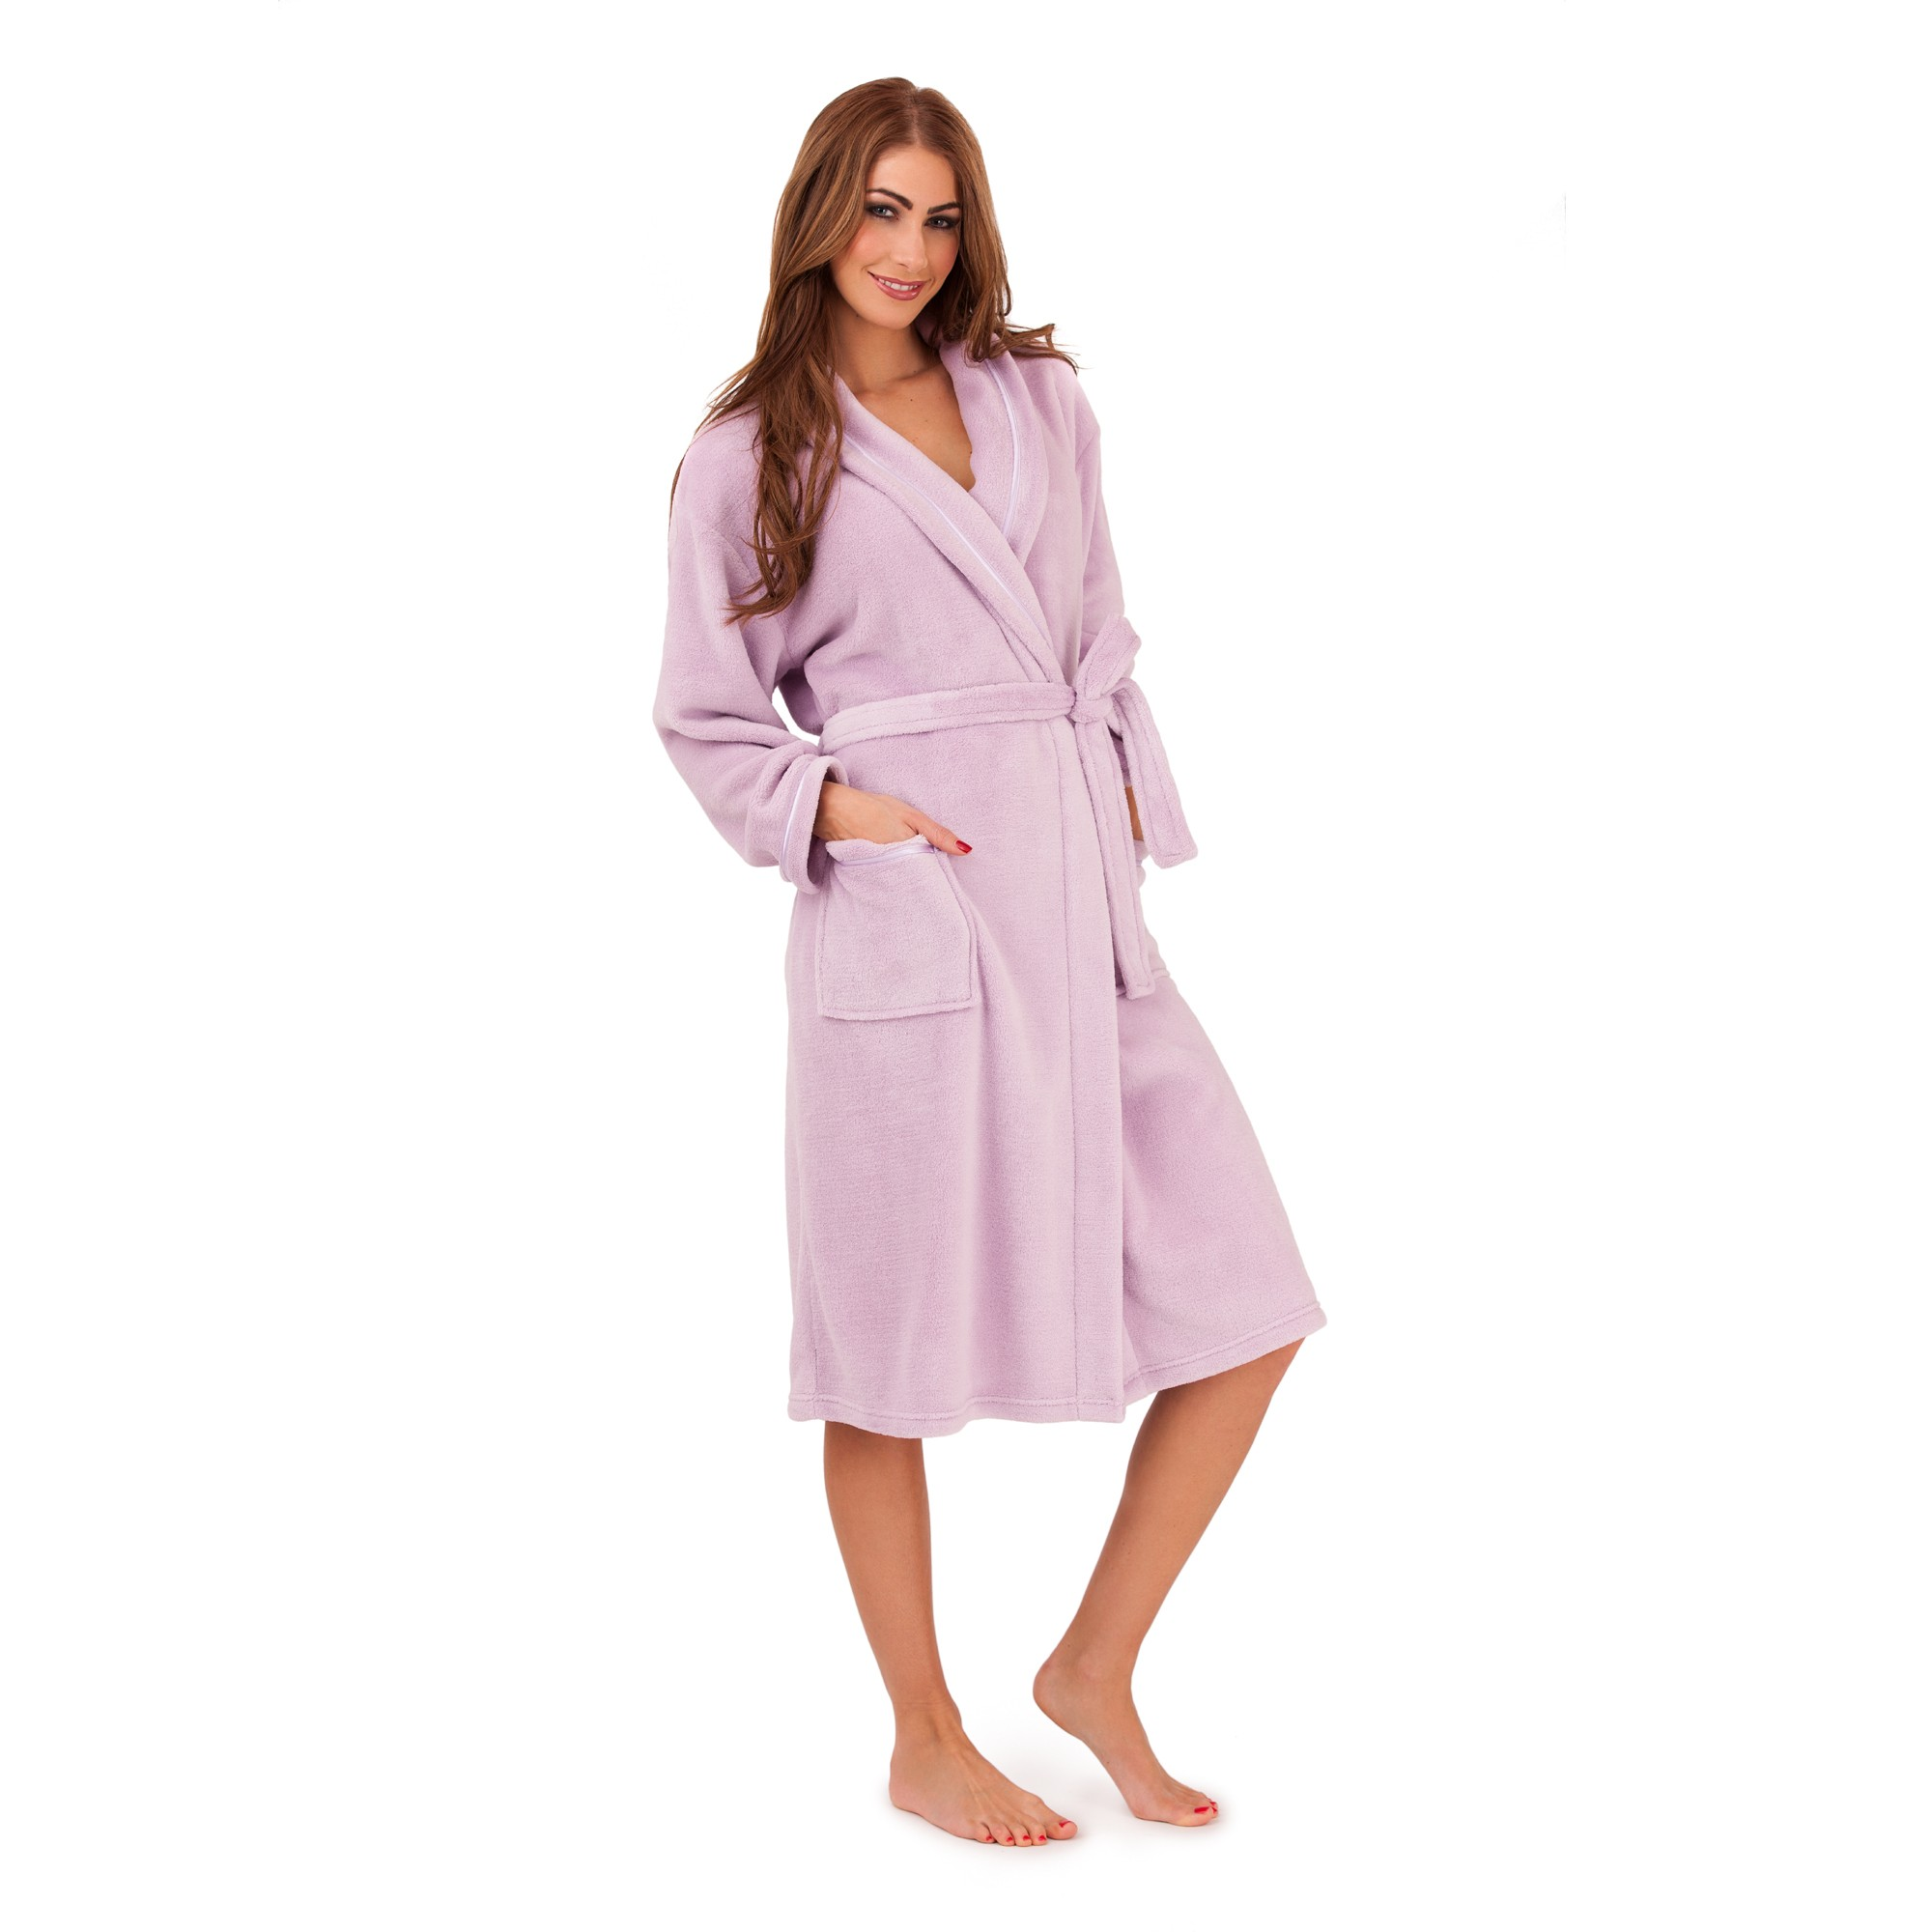 Ladies Super Soft Fleece Dressing Gown - Lilac